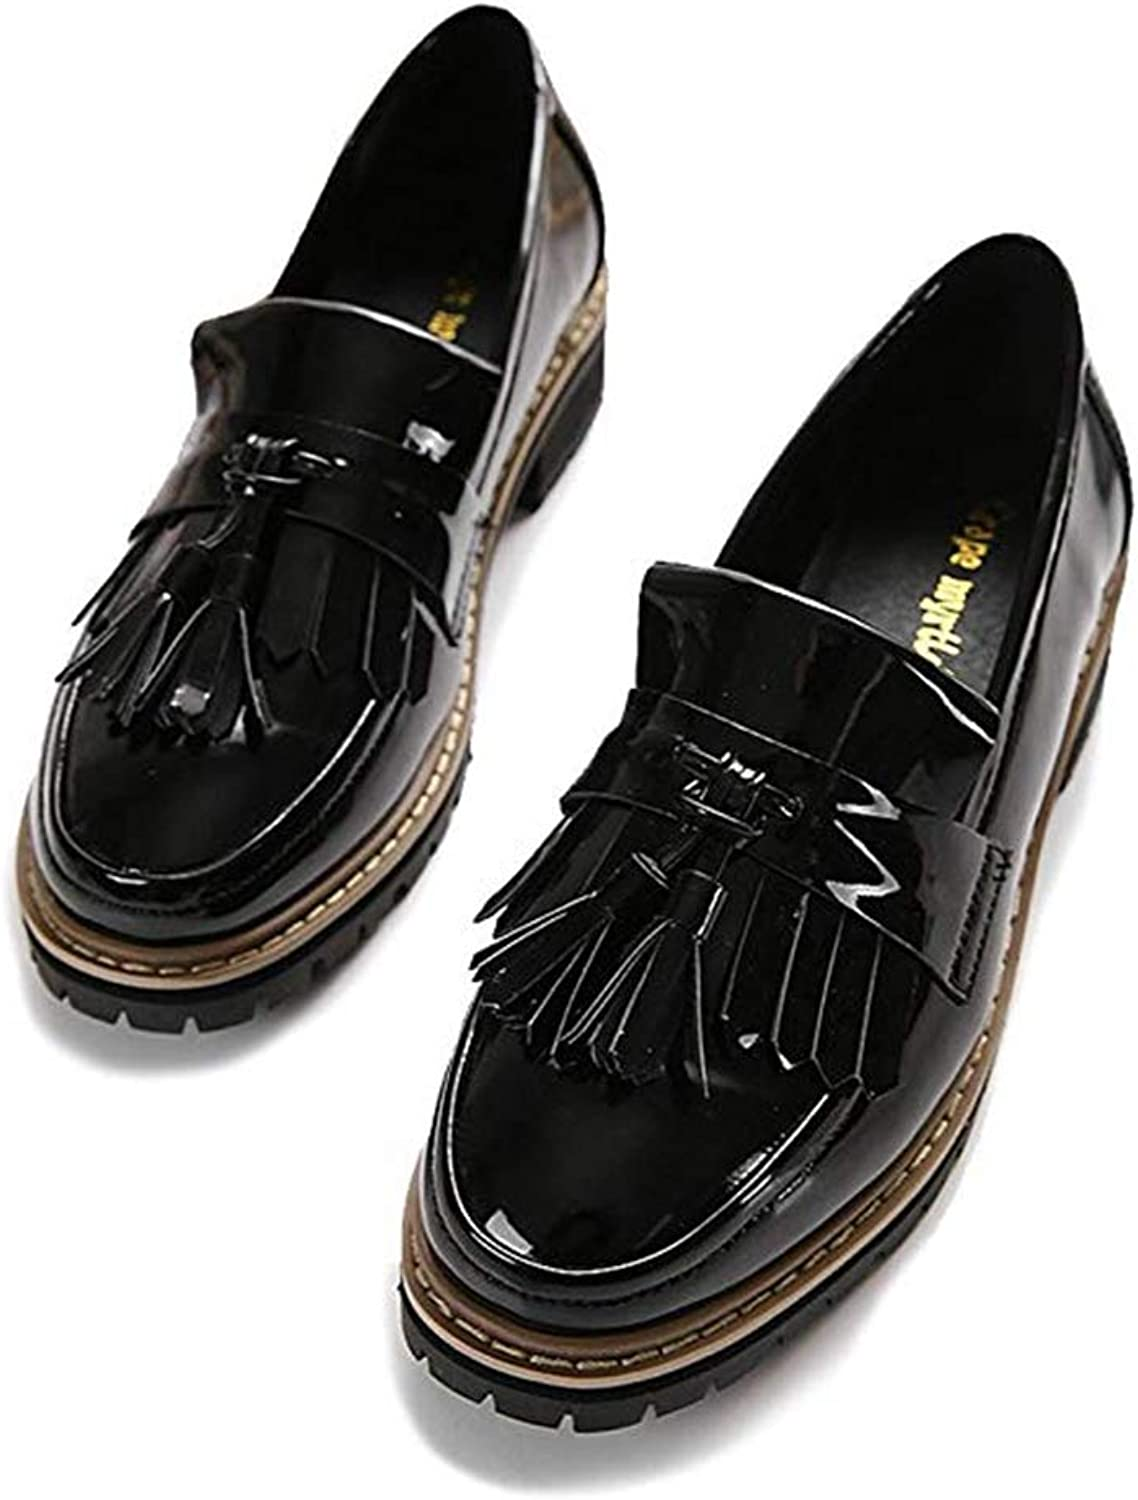 T-JULY 2018 Tassels Oxford shoes for Women Slip on Mid Heel Loafers Casual Oxfords Thick Flat Dress shoes